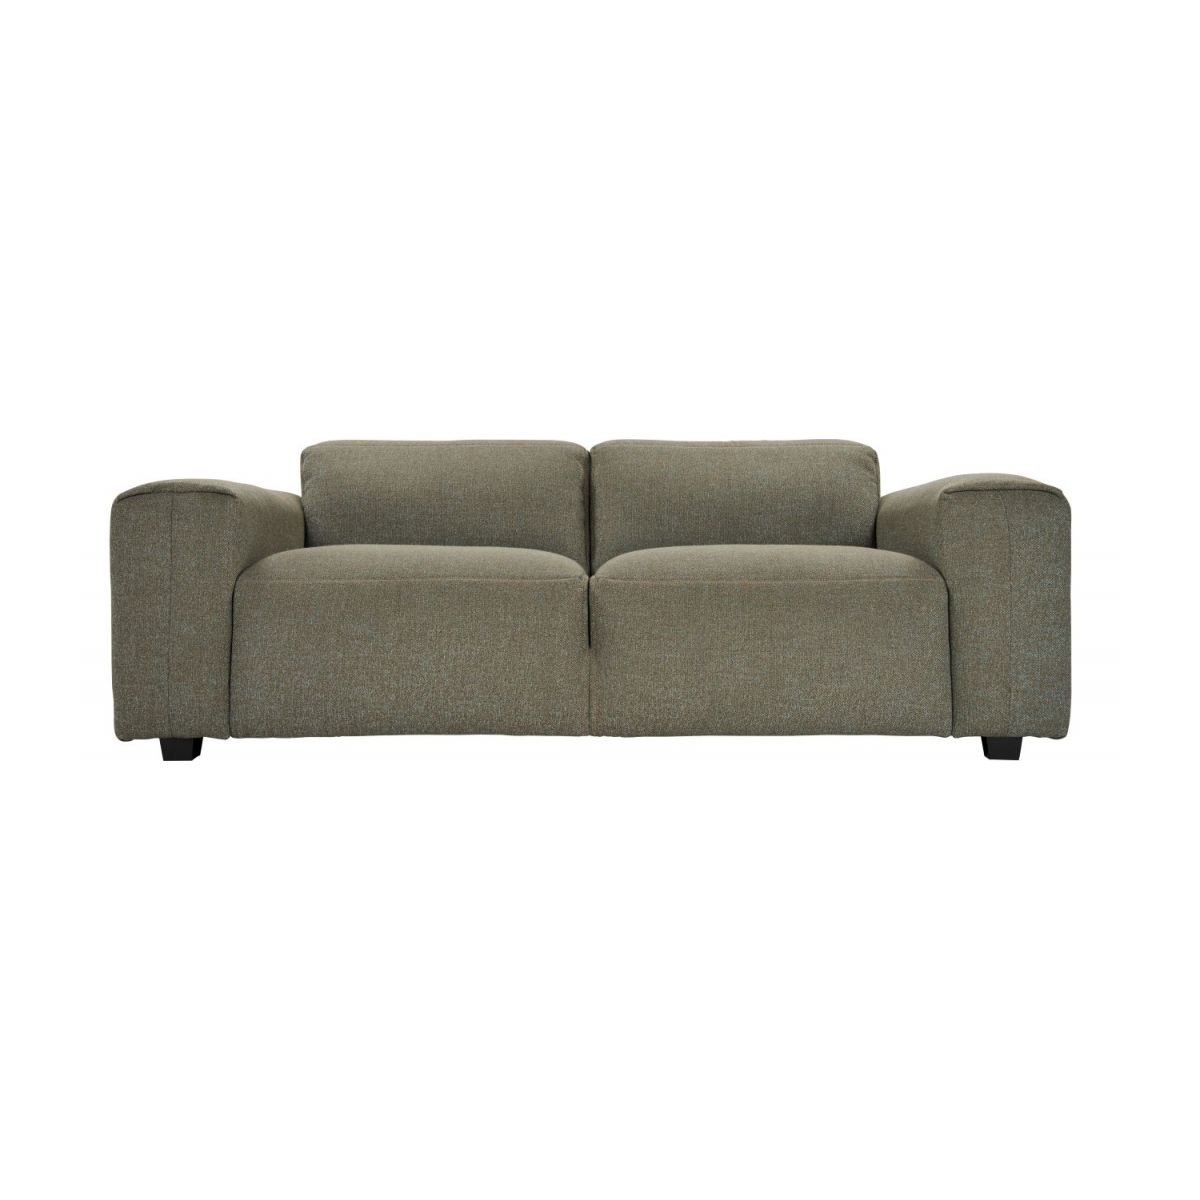 2 seater sofa in Lecce fabric, slade grey n°2